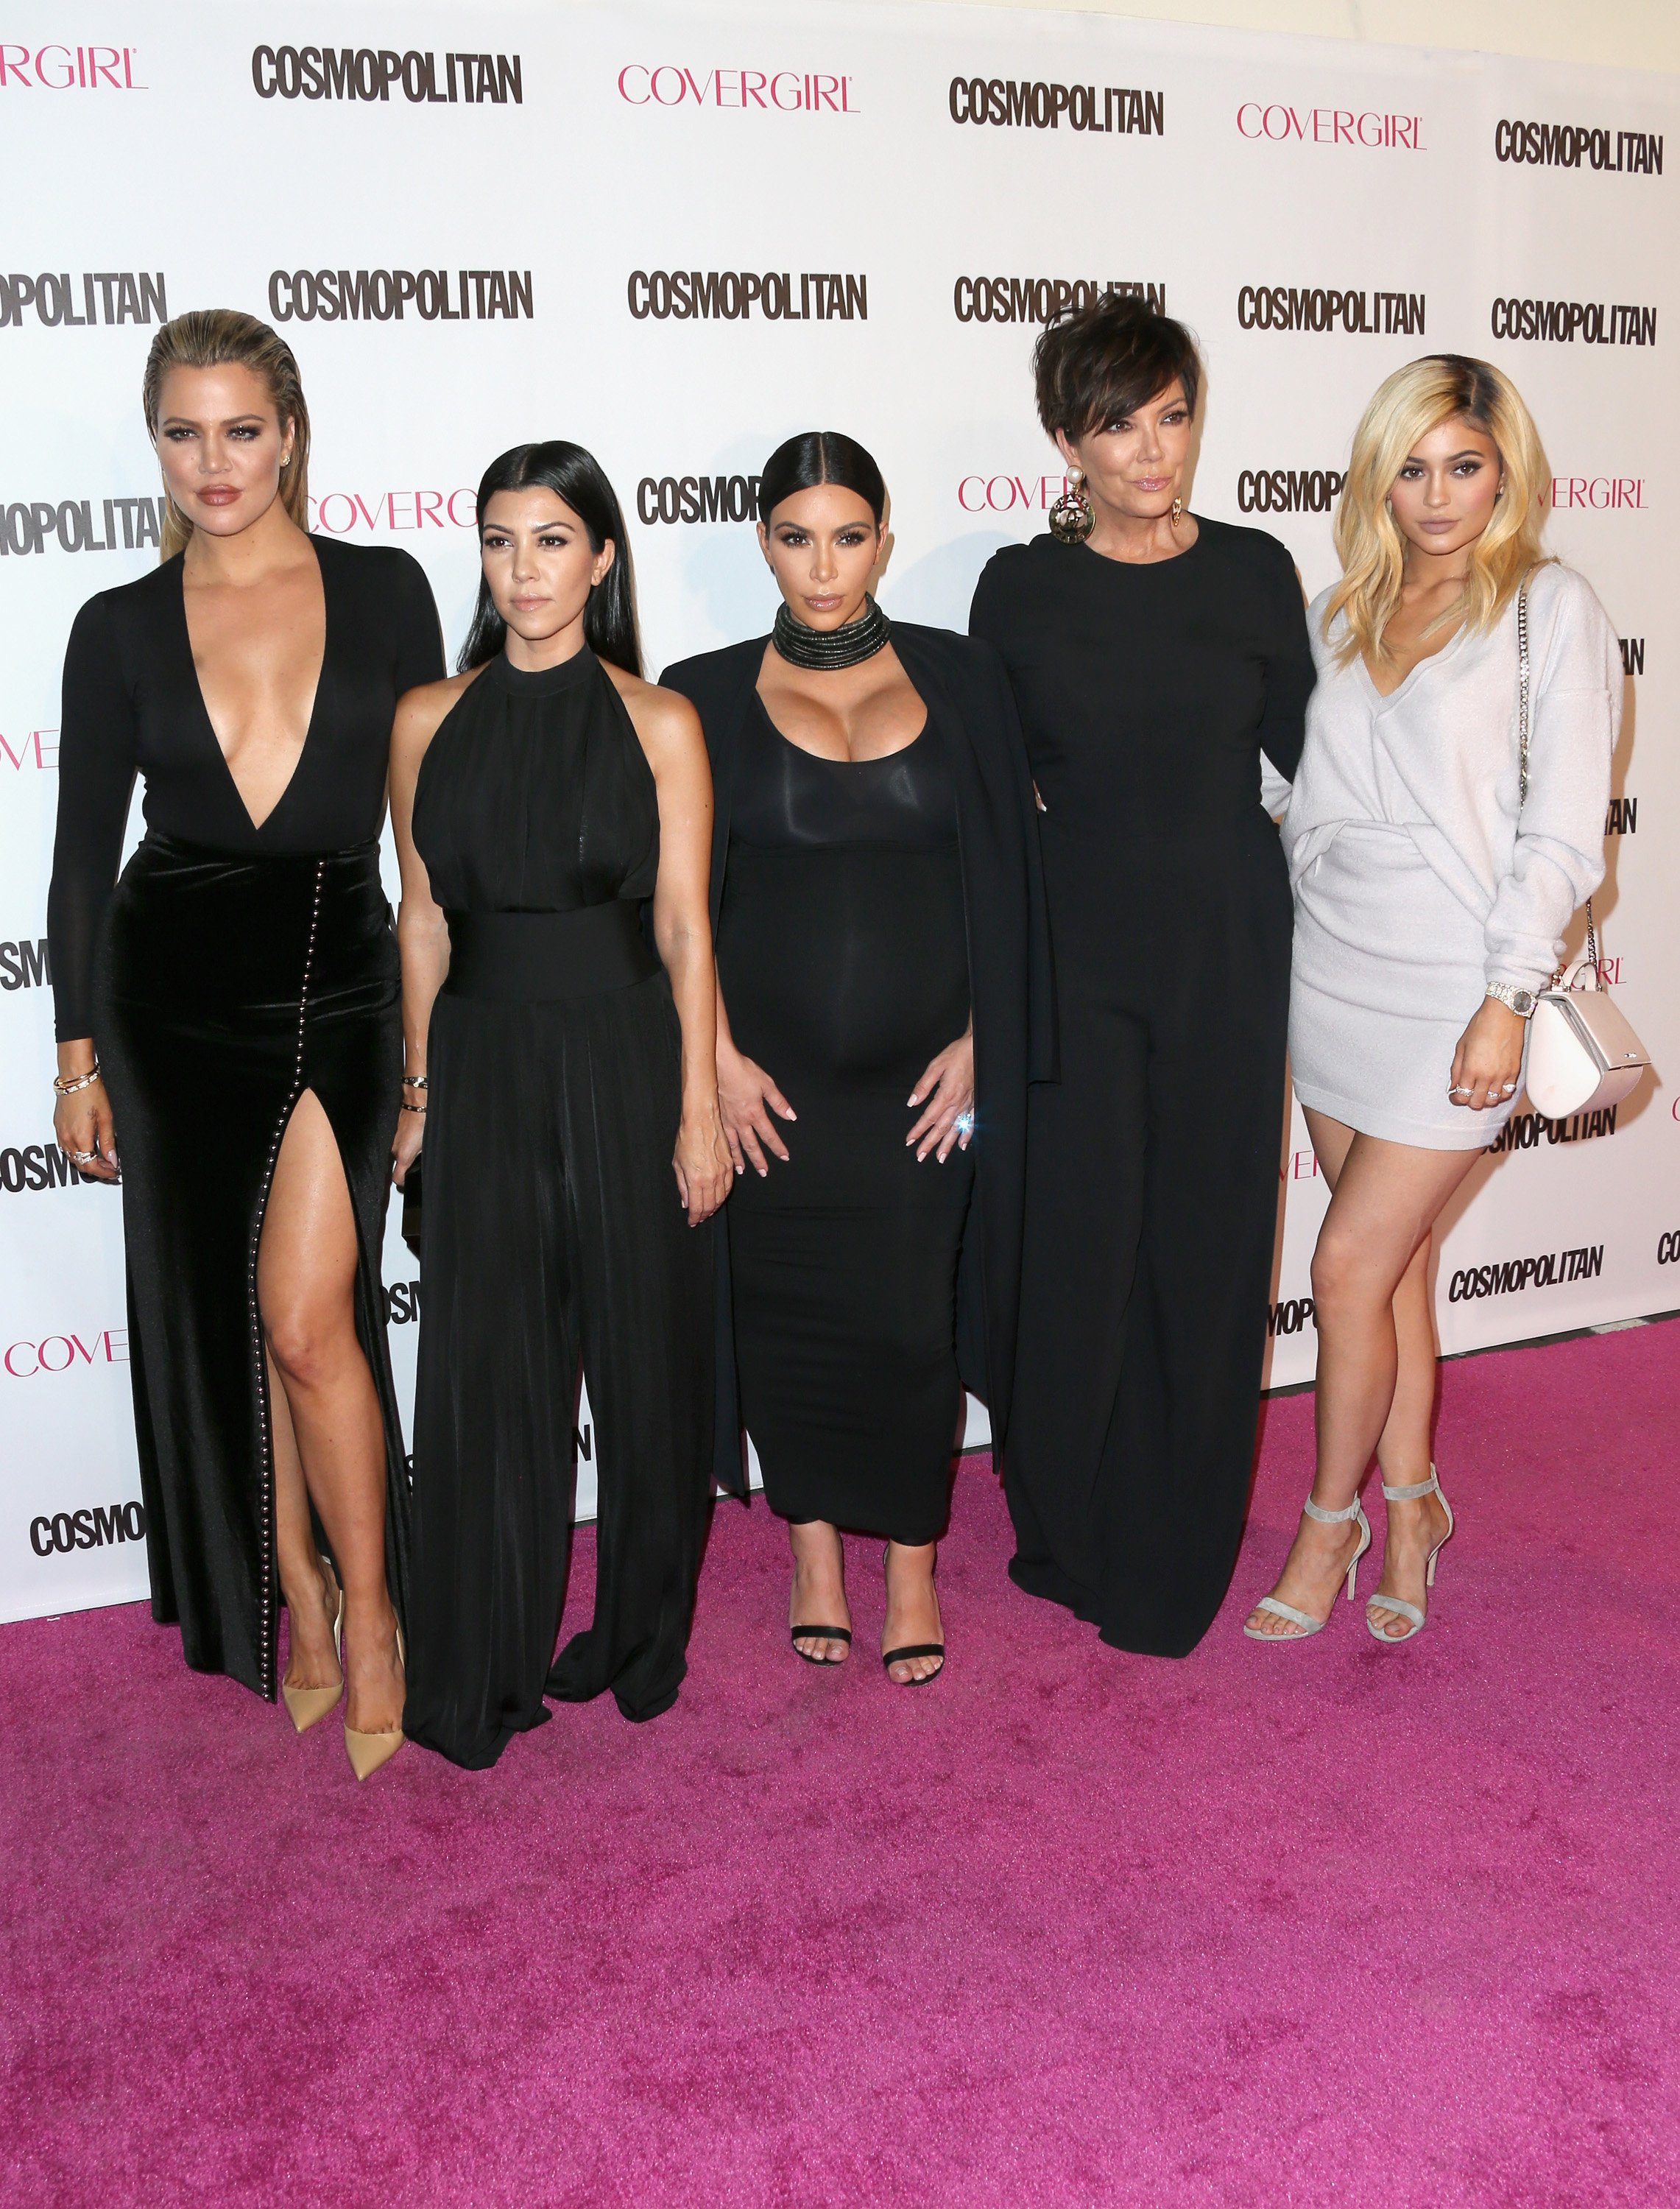 Image Credits: Getty Images / The Kardashian family